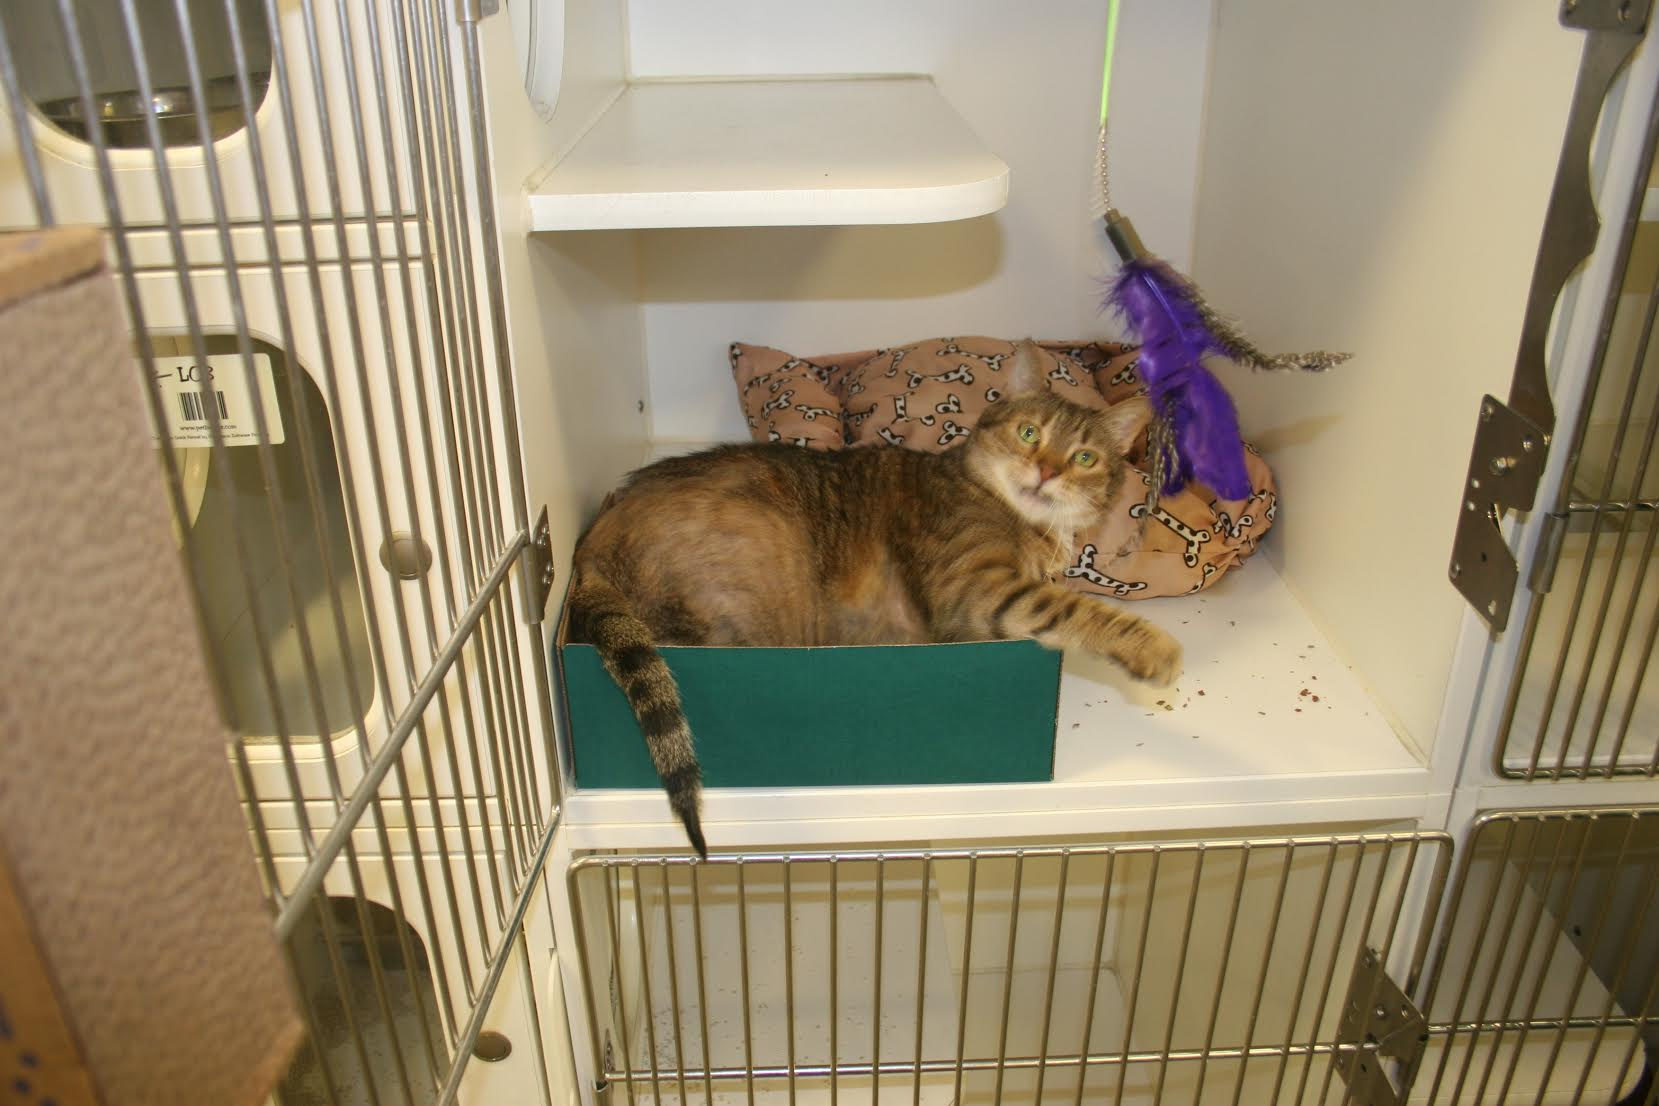 Lounging in luxury, this furry friend has it made while he waits for his forever home; a box for playing in, a bed for napping, a scratch pad, and a fun-loving volunteer to play feather-wand with.